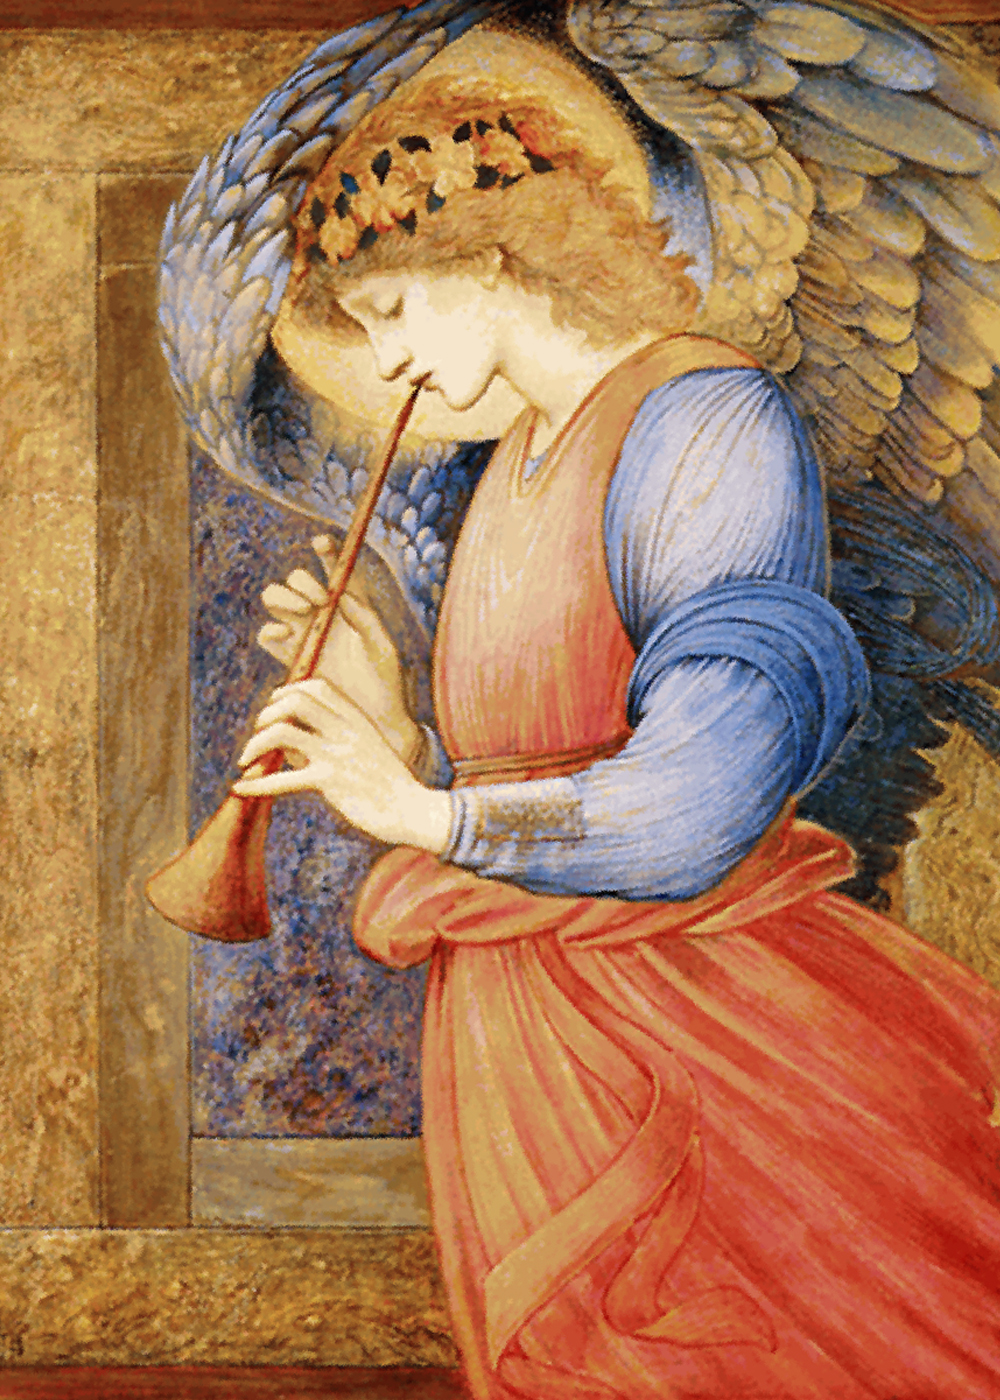 https://i0.wp.com/upload.wikimedia.org/wikipedia/commons/d/d4/Edward_Burne-Jones_-_An_Angel_Playing_a_Flageolet.jpg